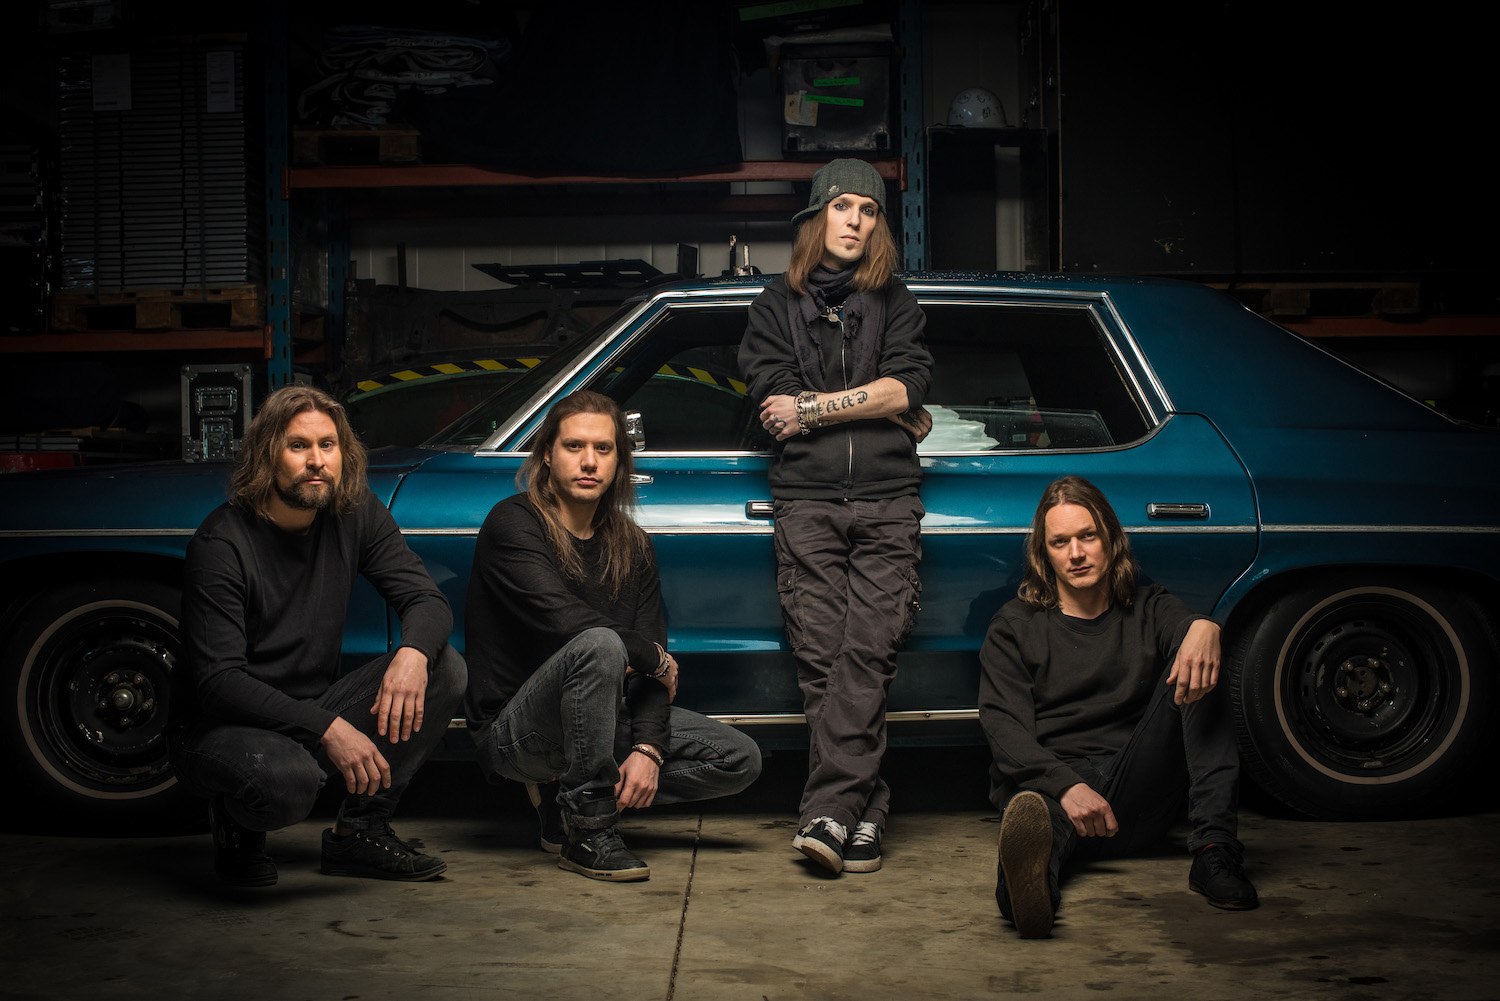 childrenofbodom2015a